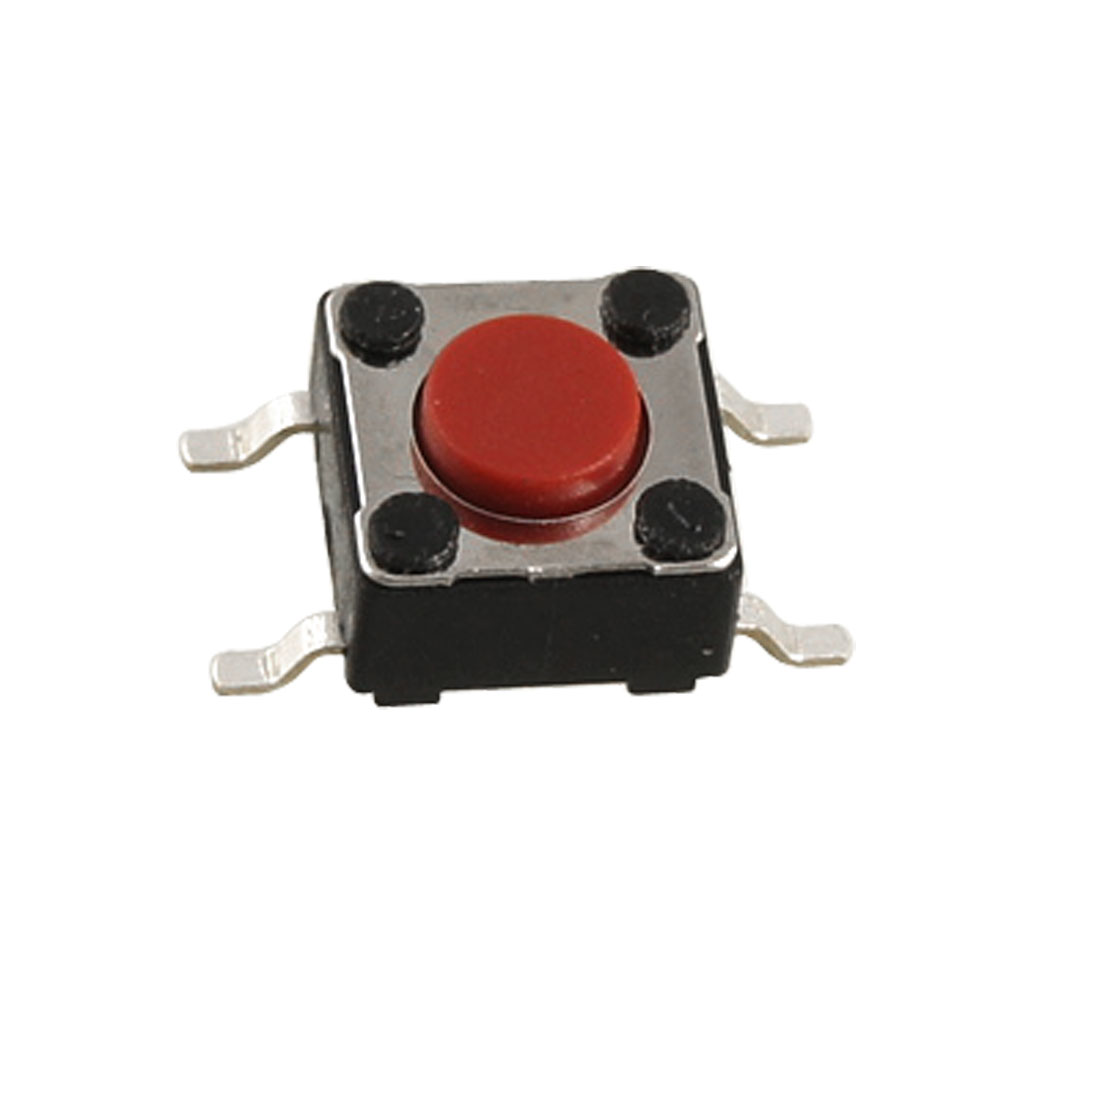 10 Pcs Red Momentary Tact Tactile Push Button Switch SMD SMT PCB 4 Pin 6 x 6 x 4.3mm